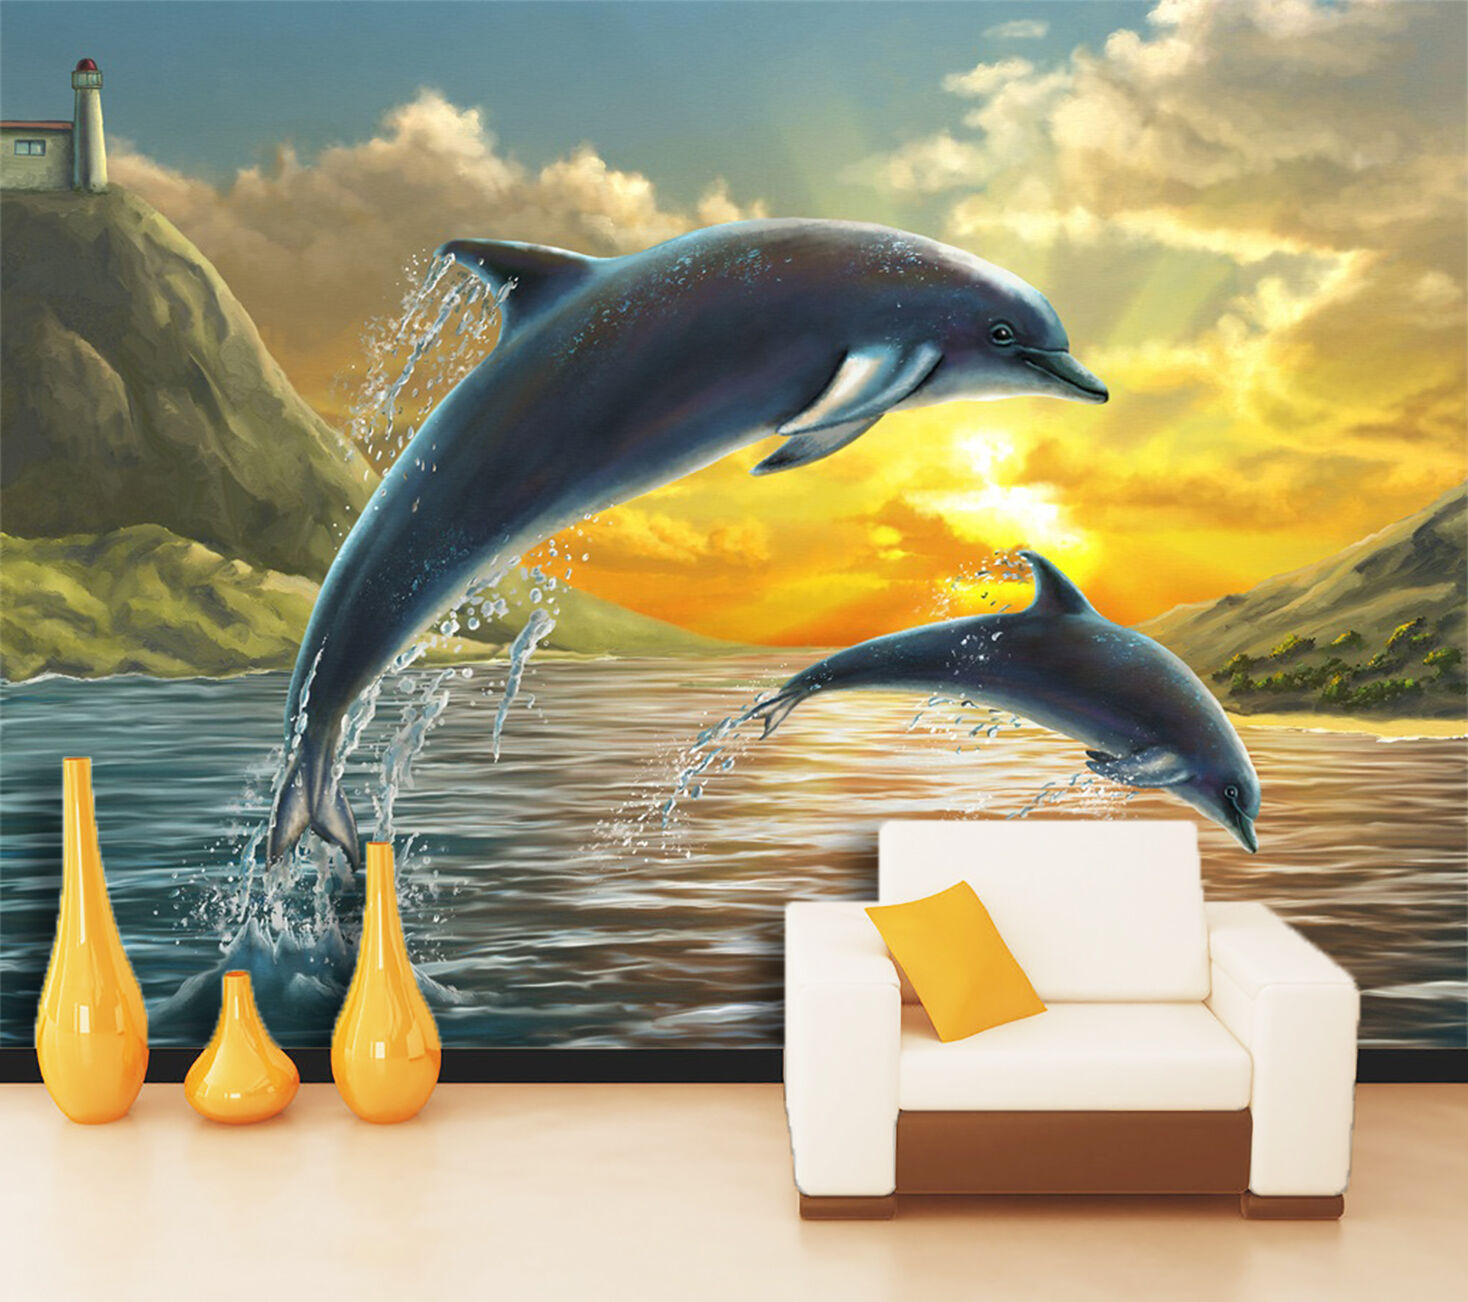 3D Jumping Dolphins 020 WallPaper Murals Wall Print Decal Wall Deco AJ WALLPAPER